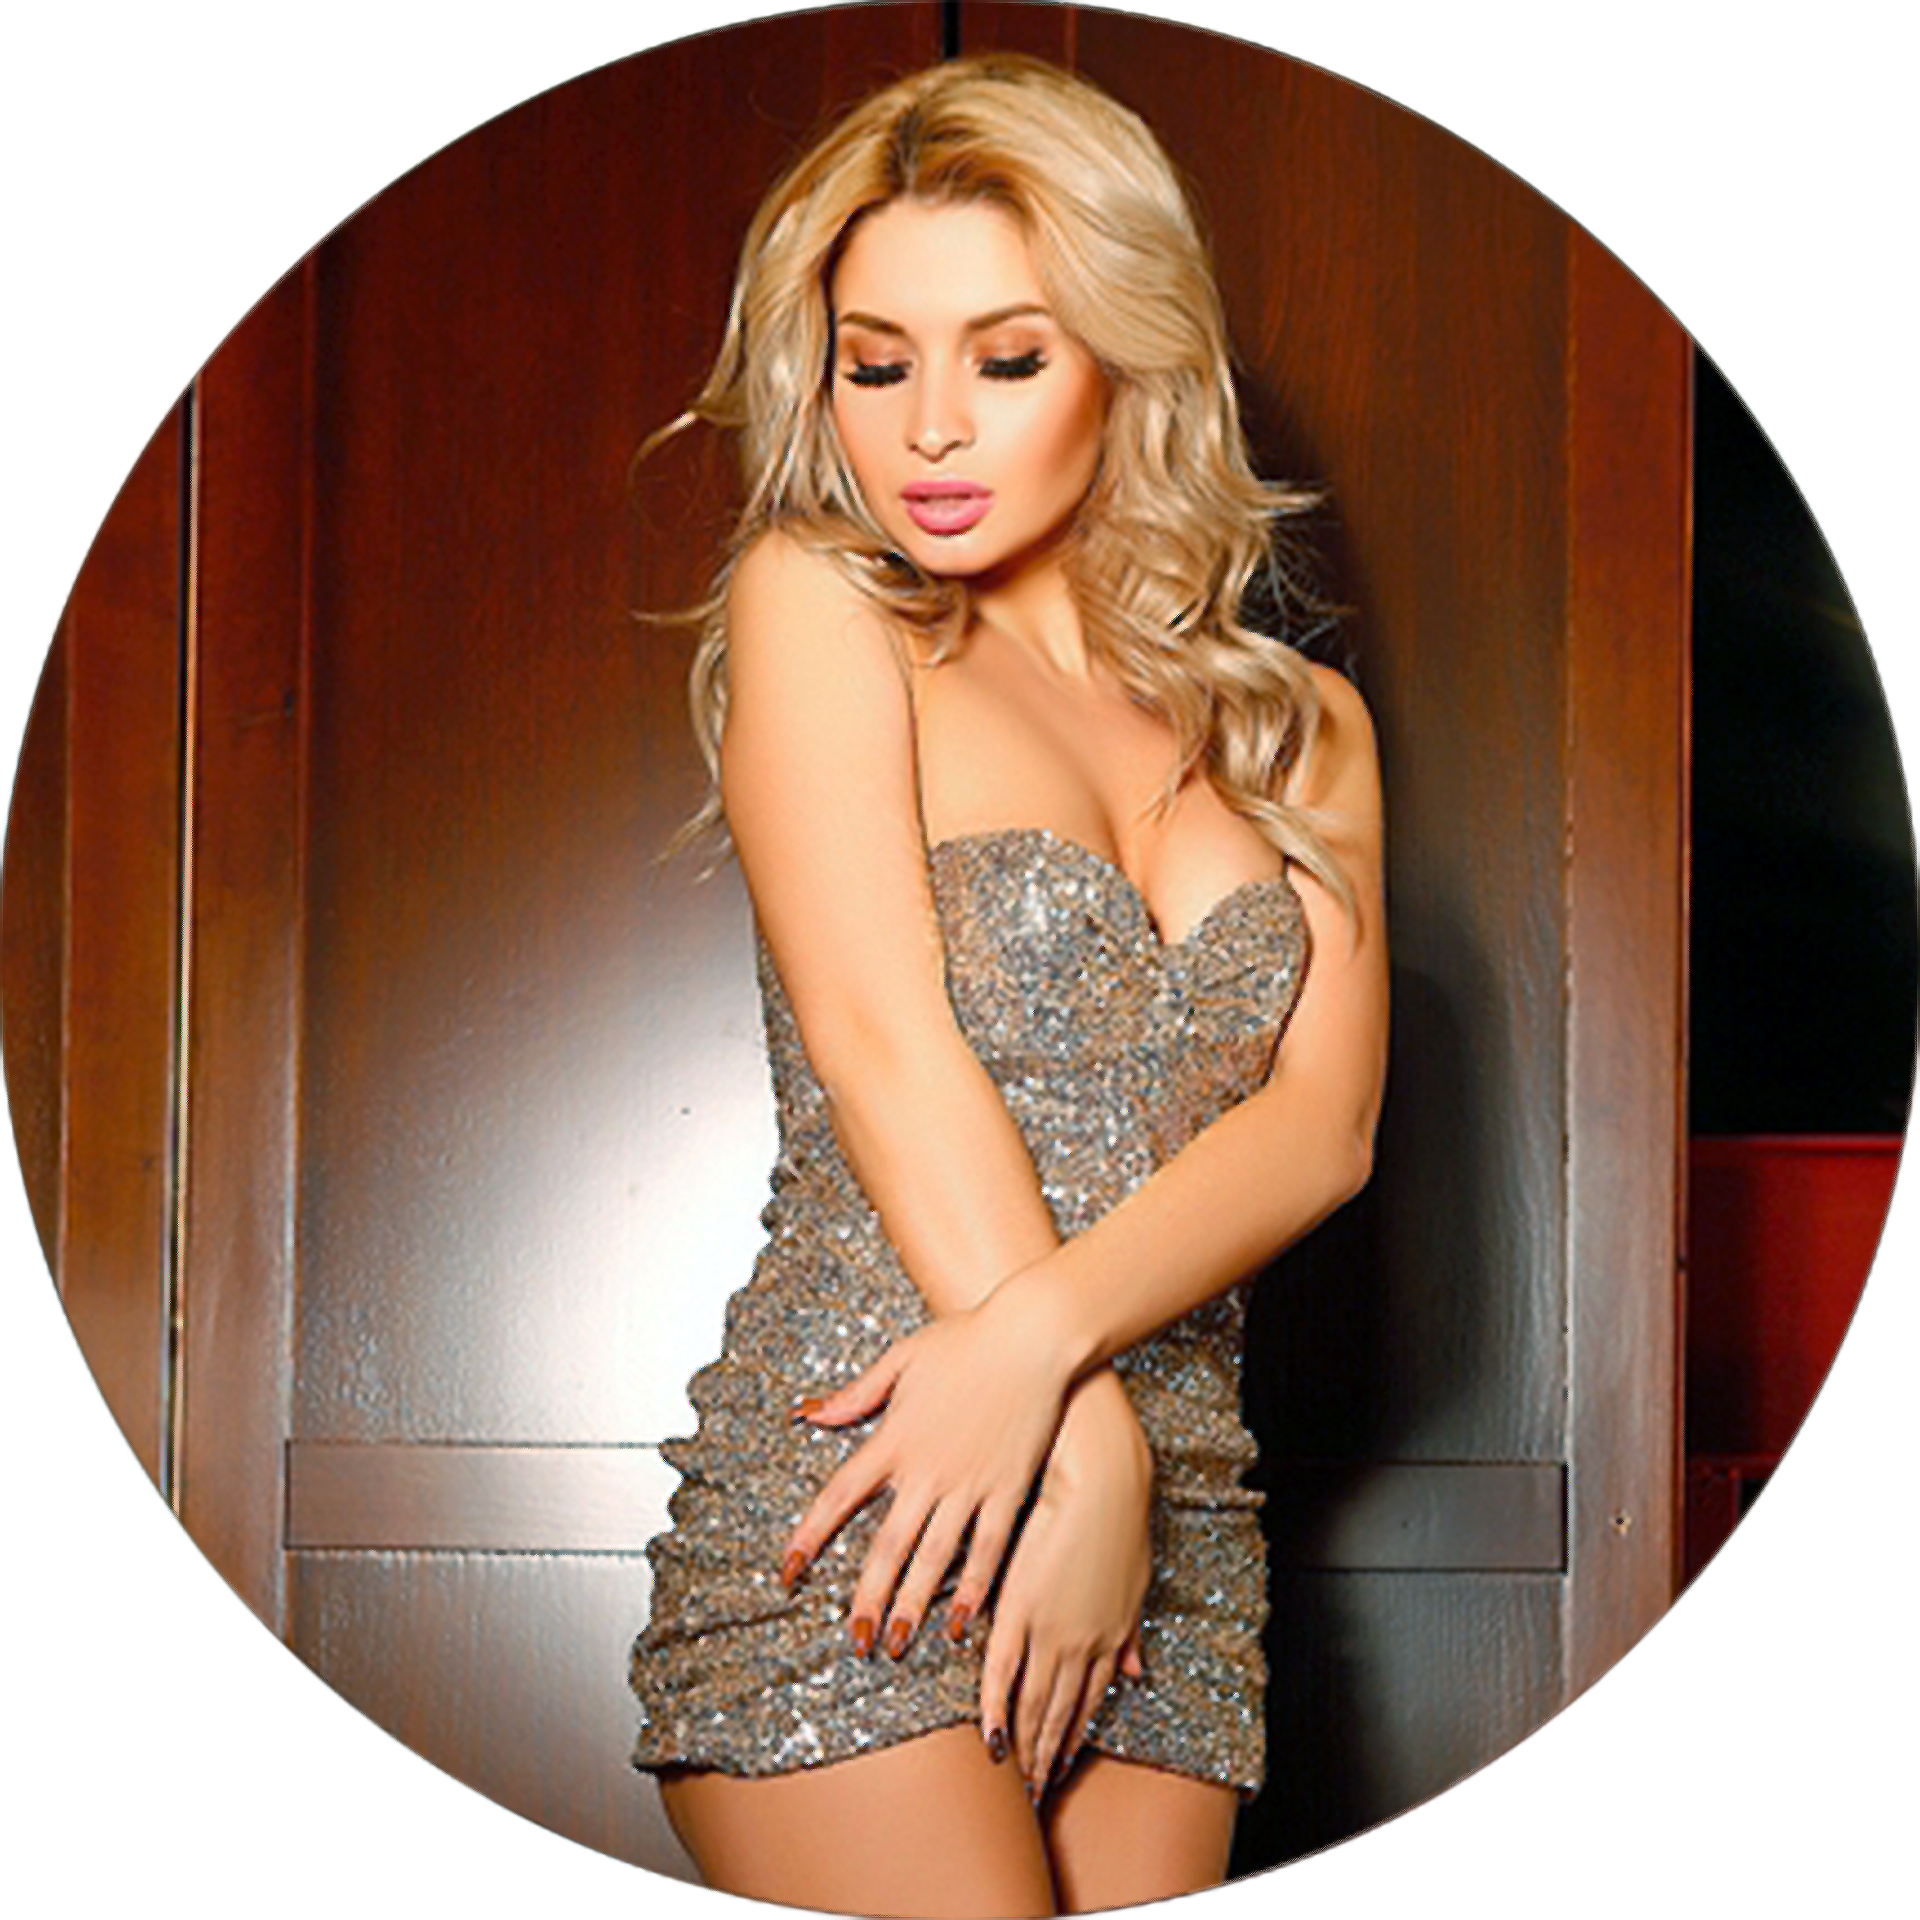 Los Angeles independent escort, Briana